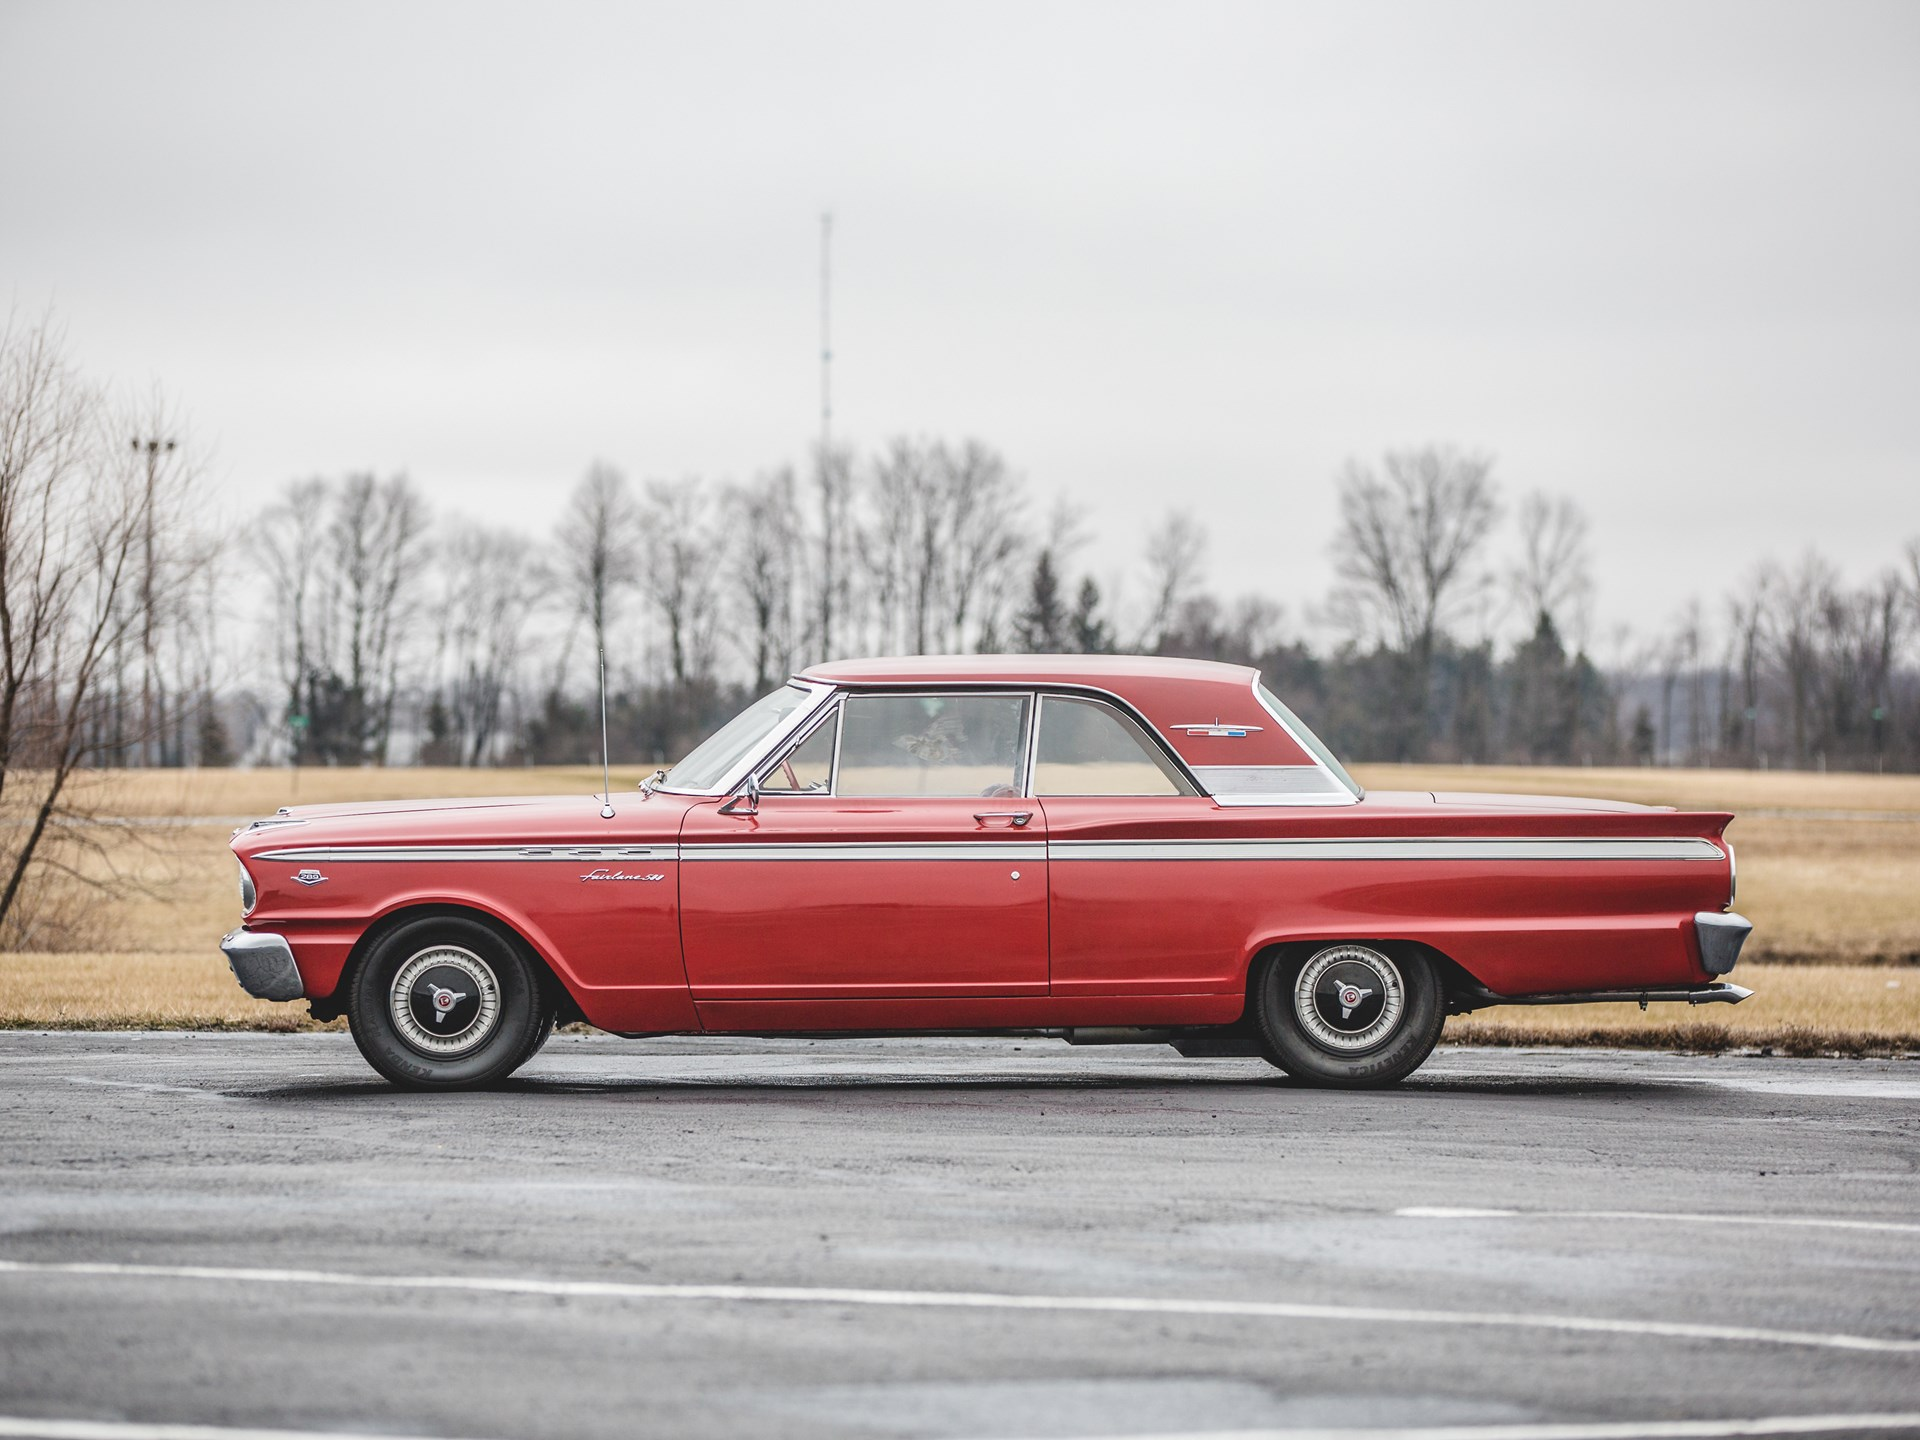 RM Sotheby's - 1963 Ford Fairlane 500 Sports Coupe   Auburn